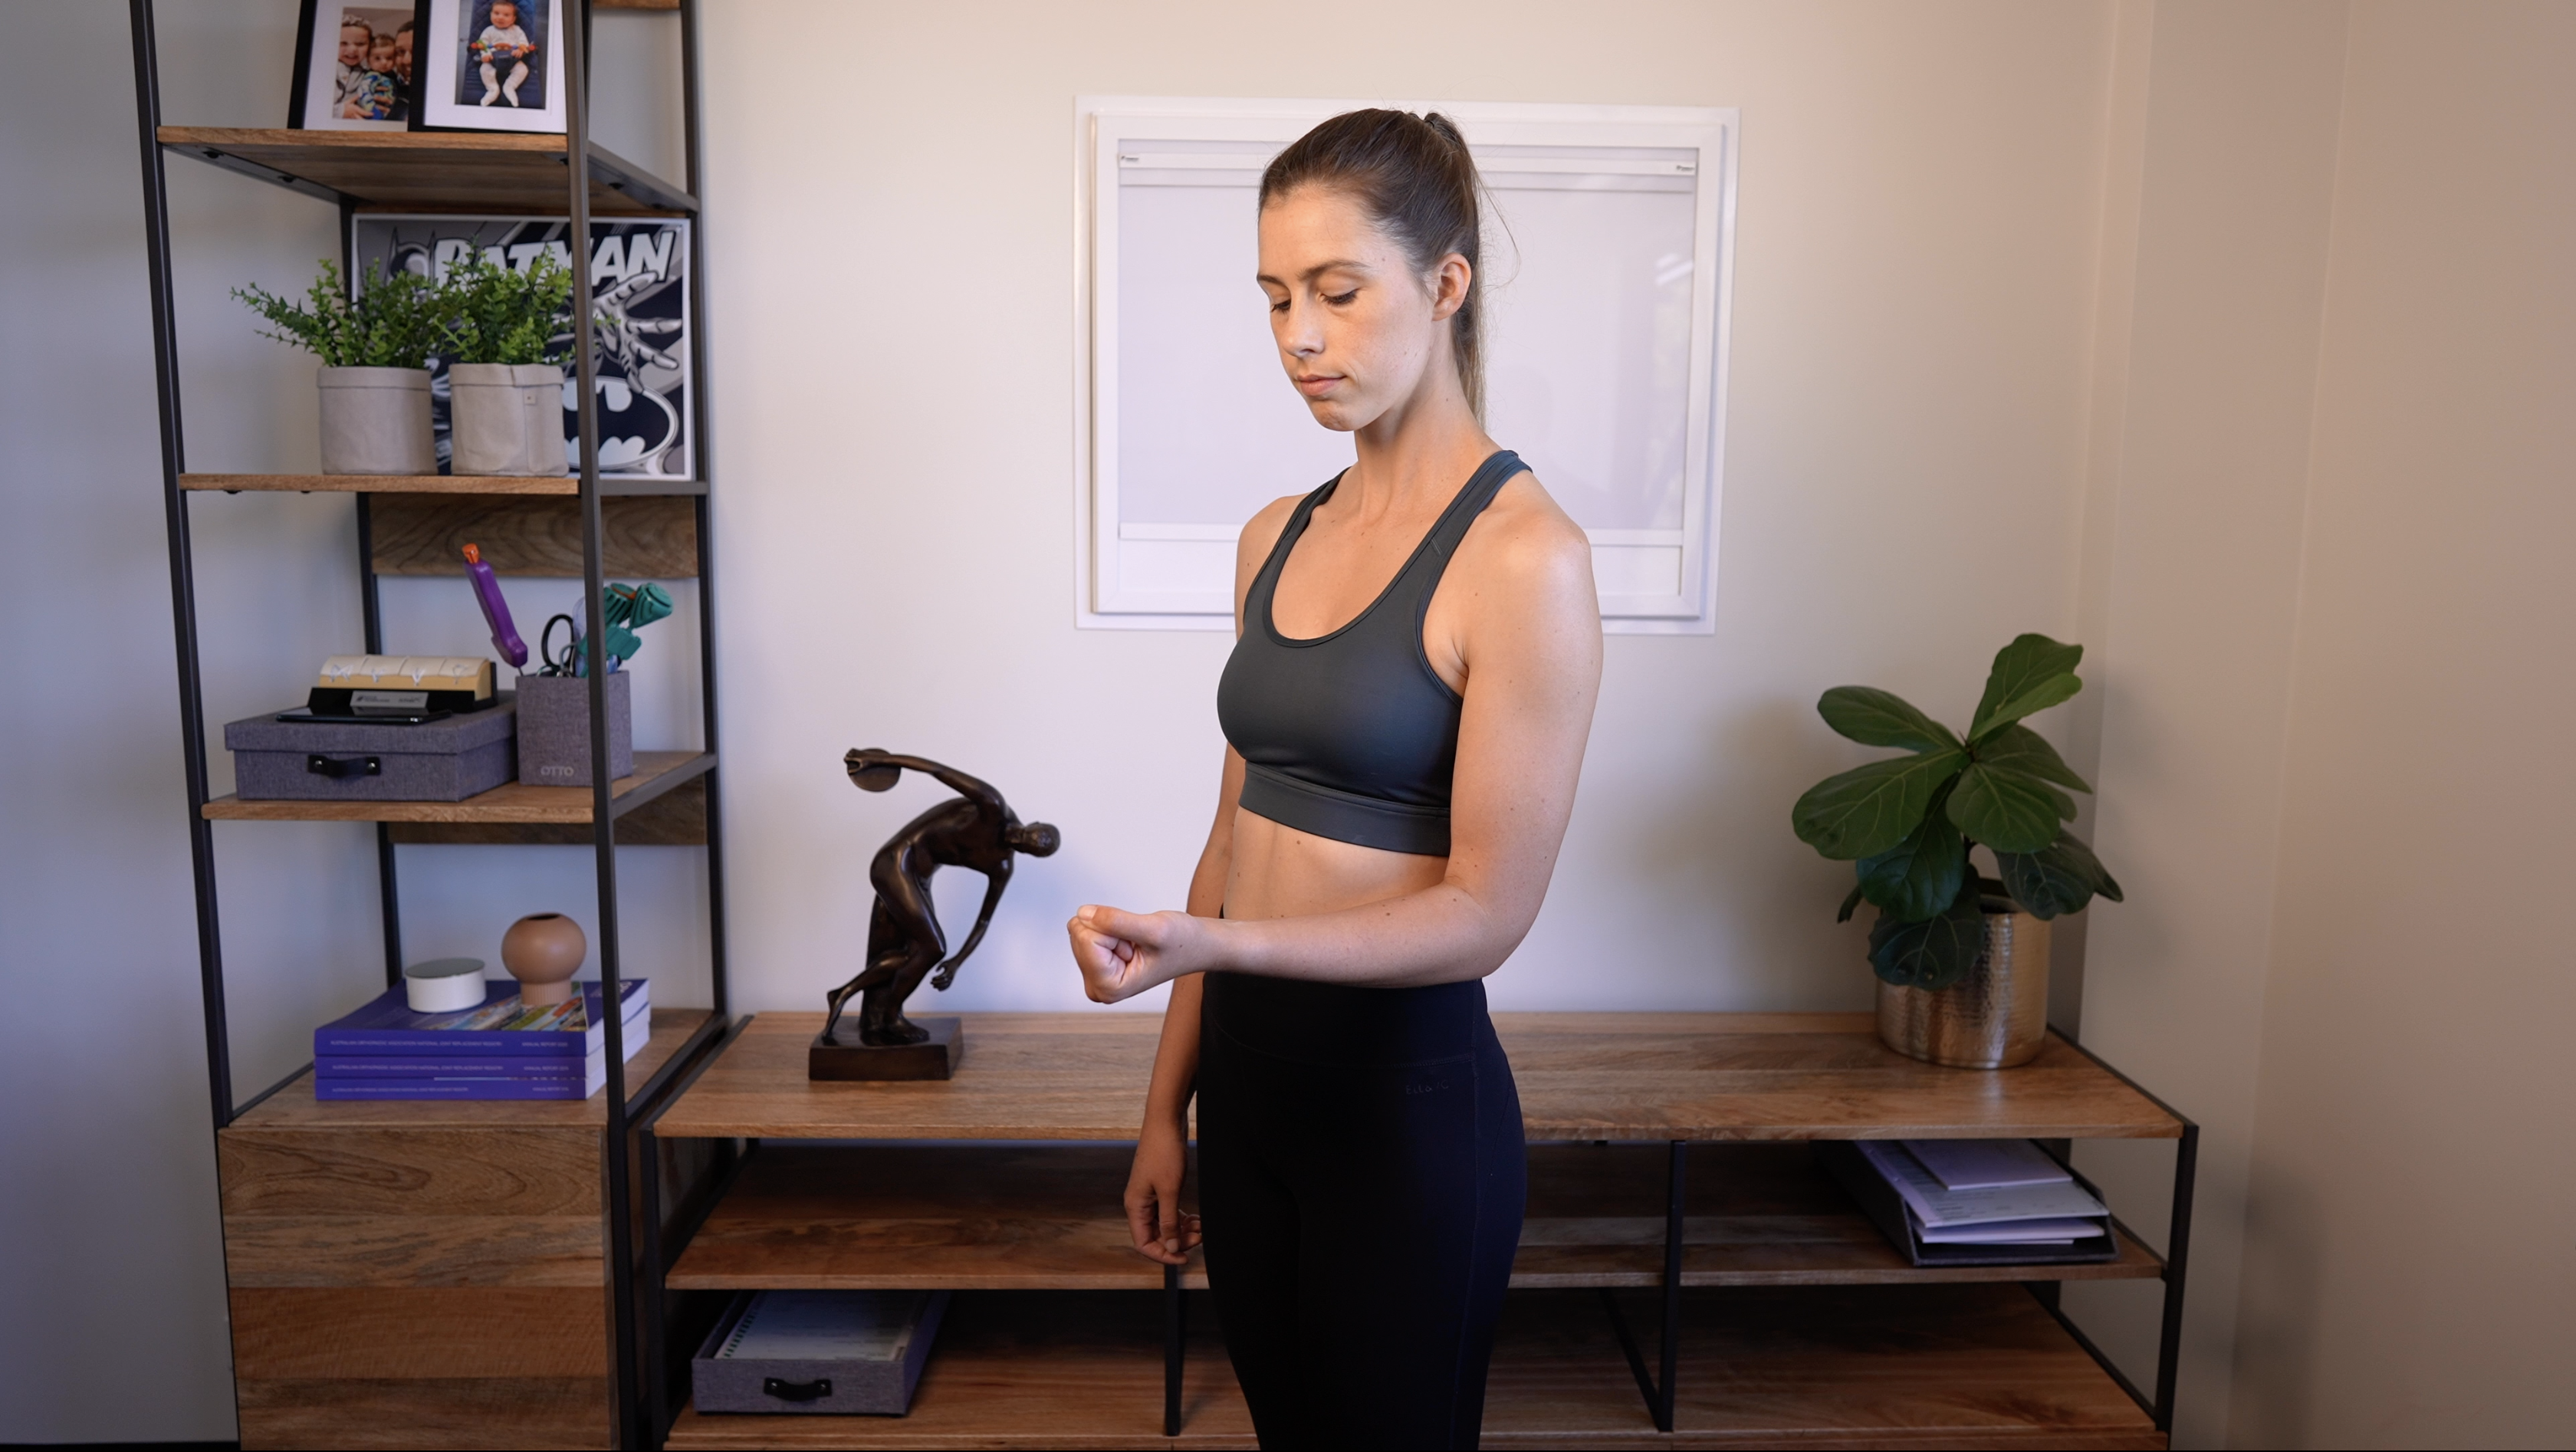 Post-op exercises